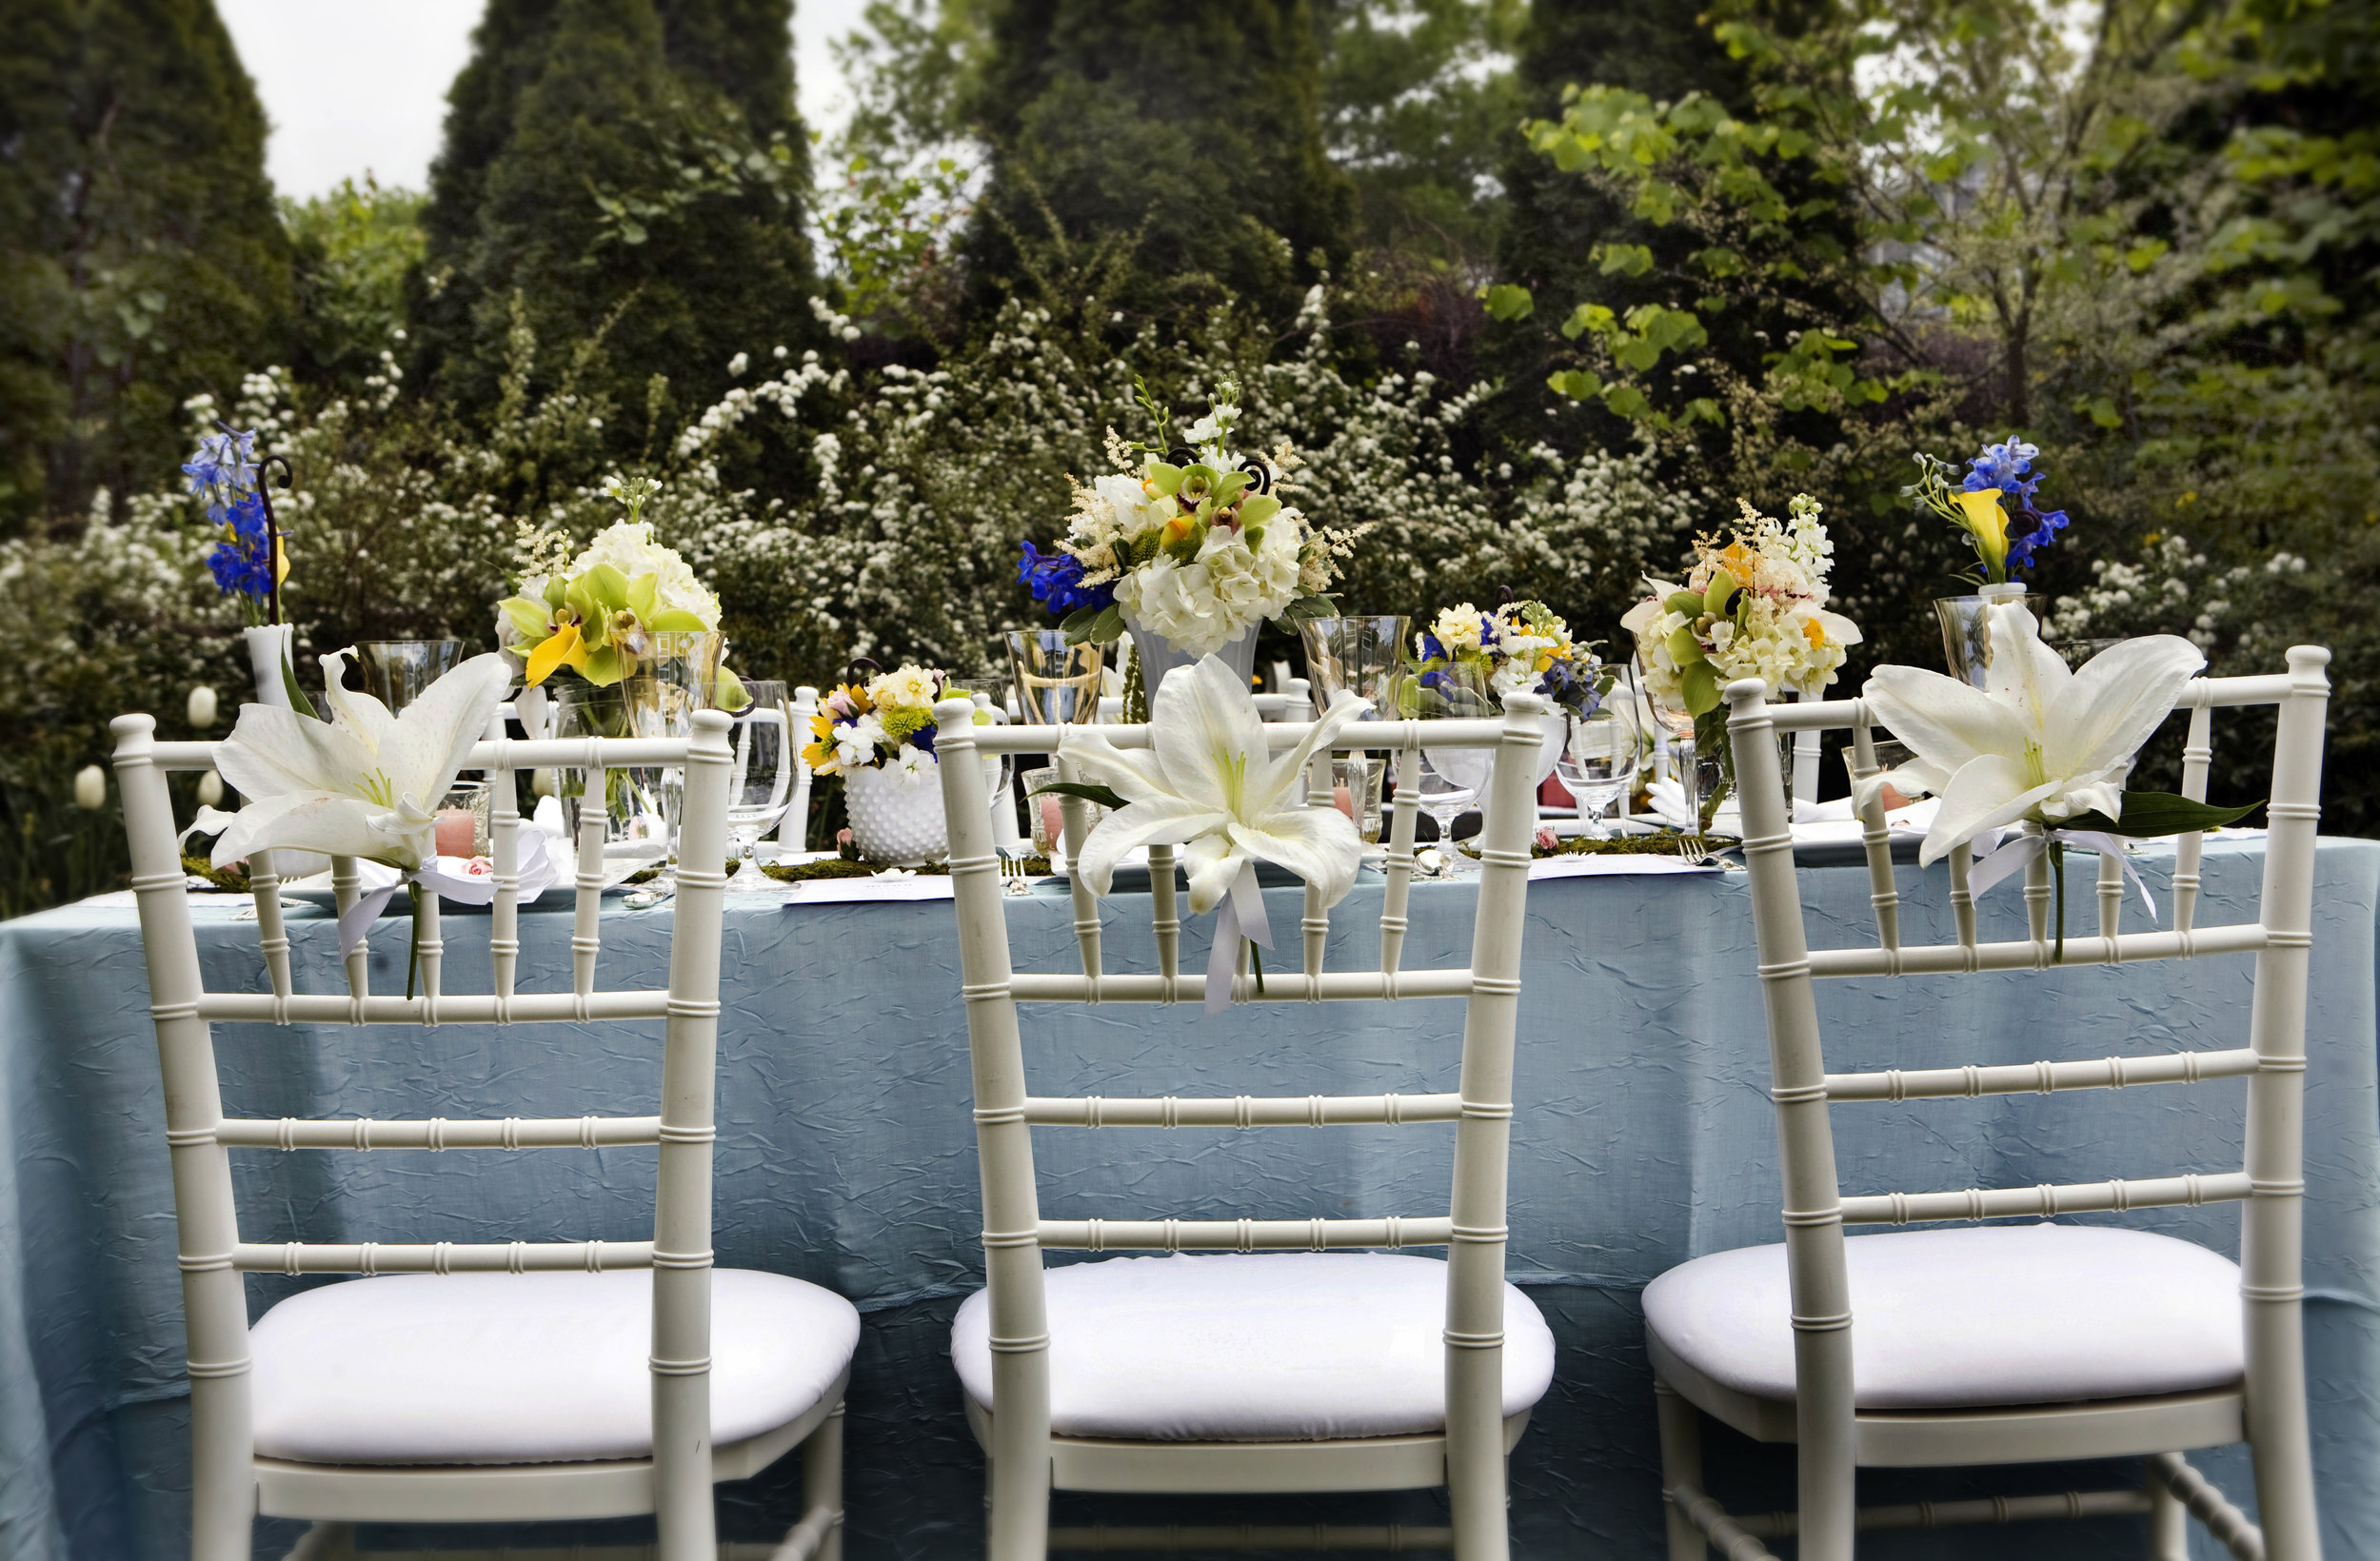 Chairs and Table Scape